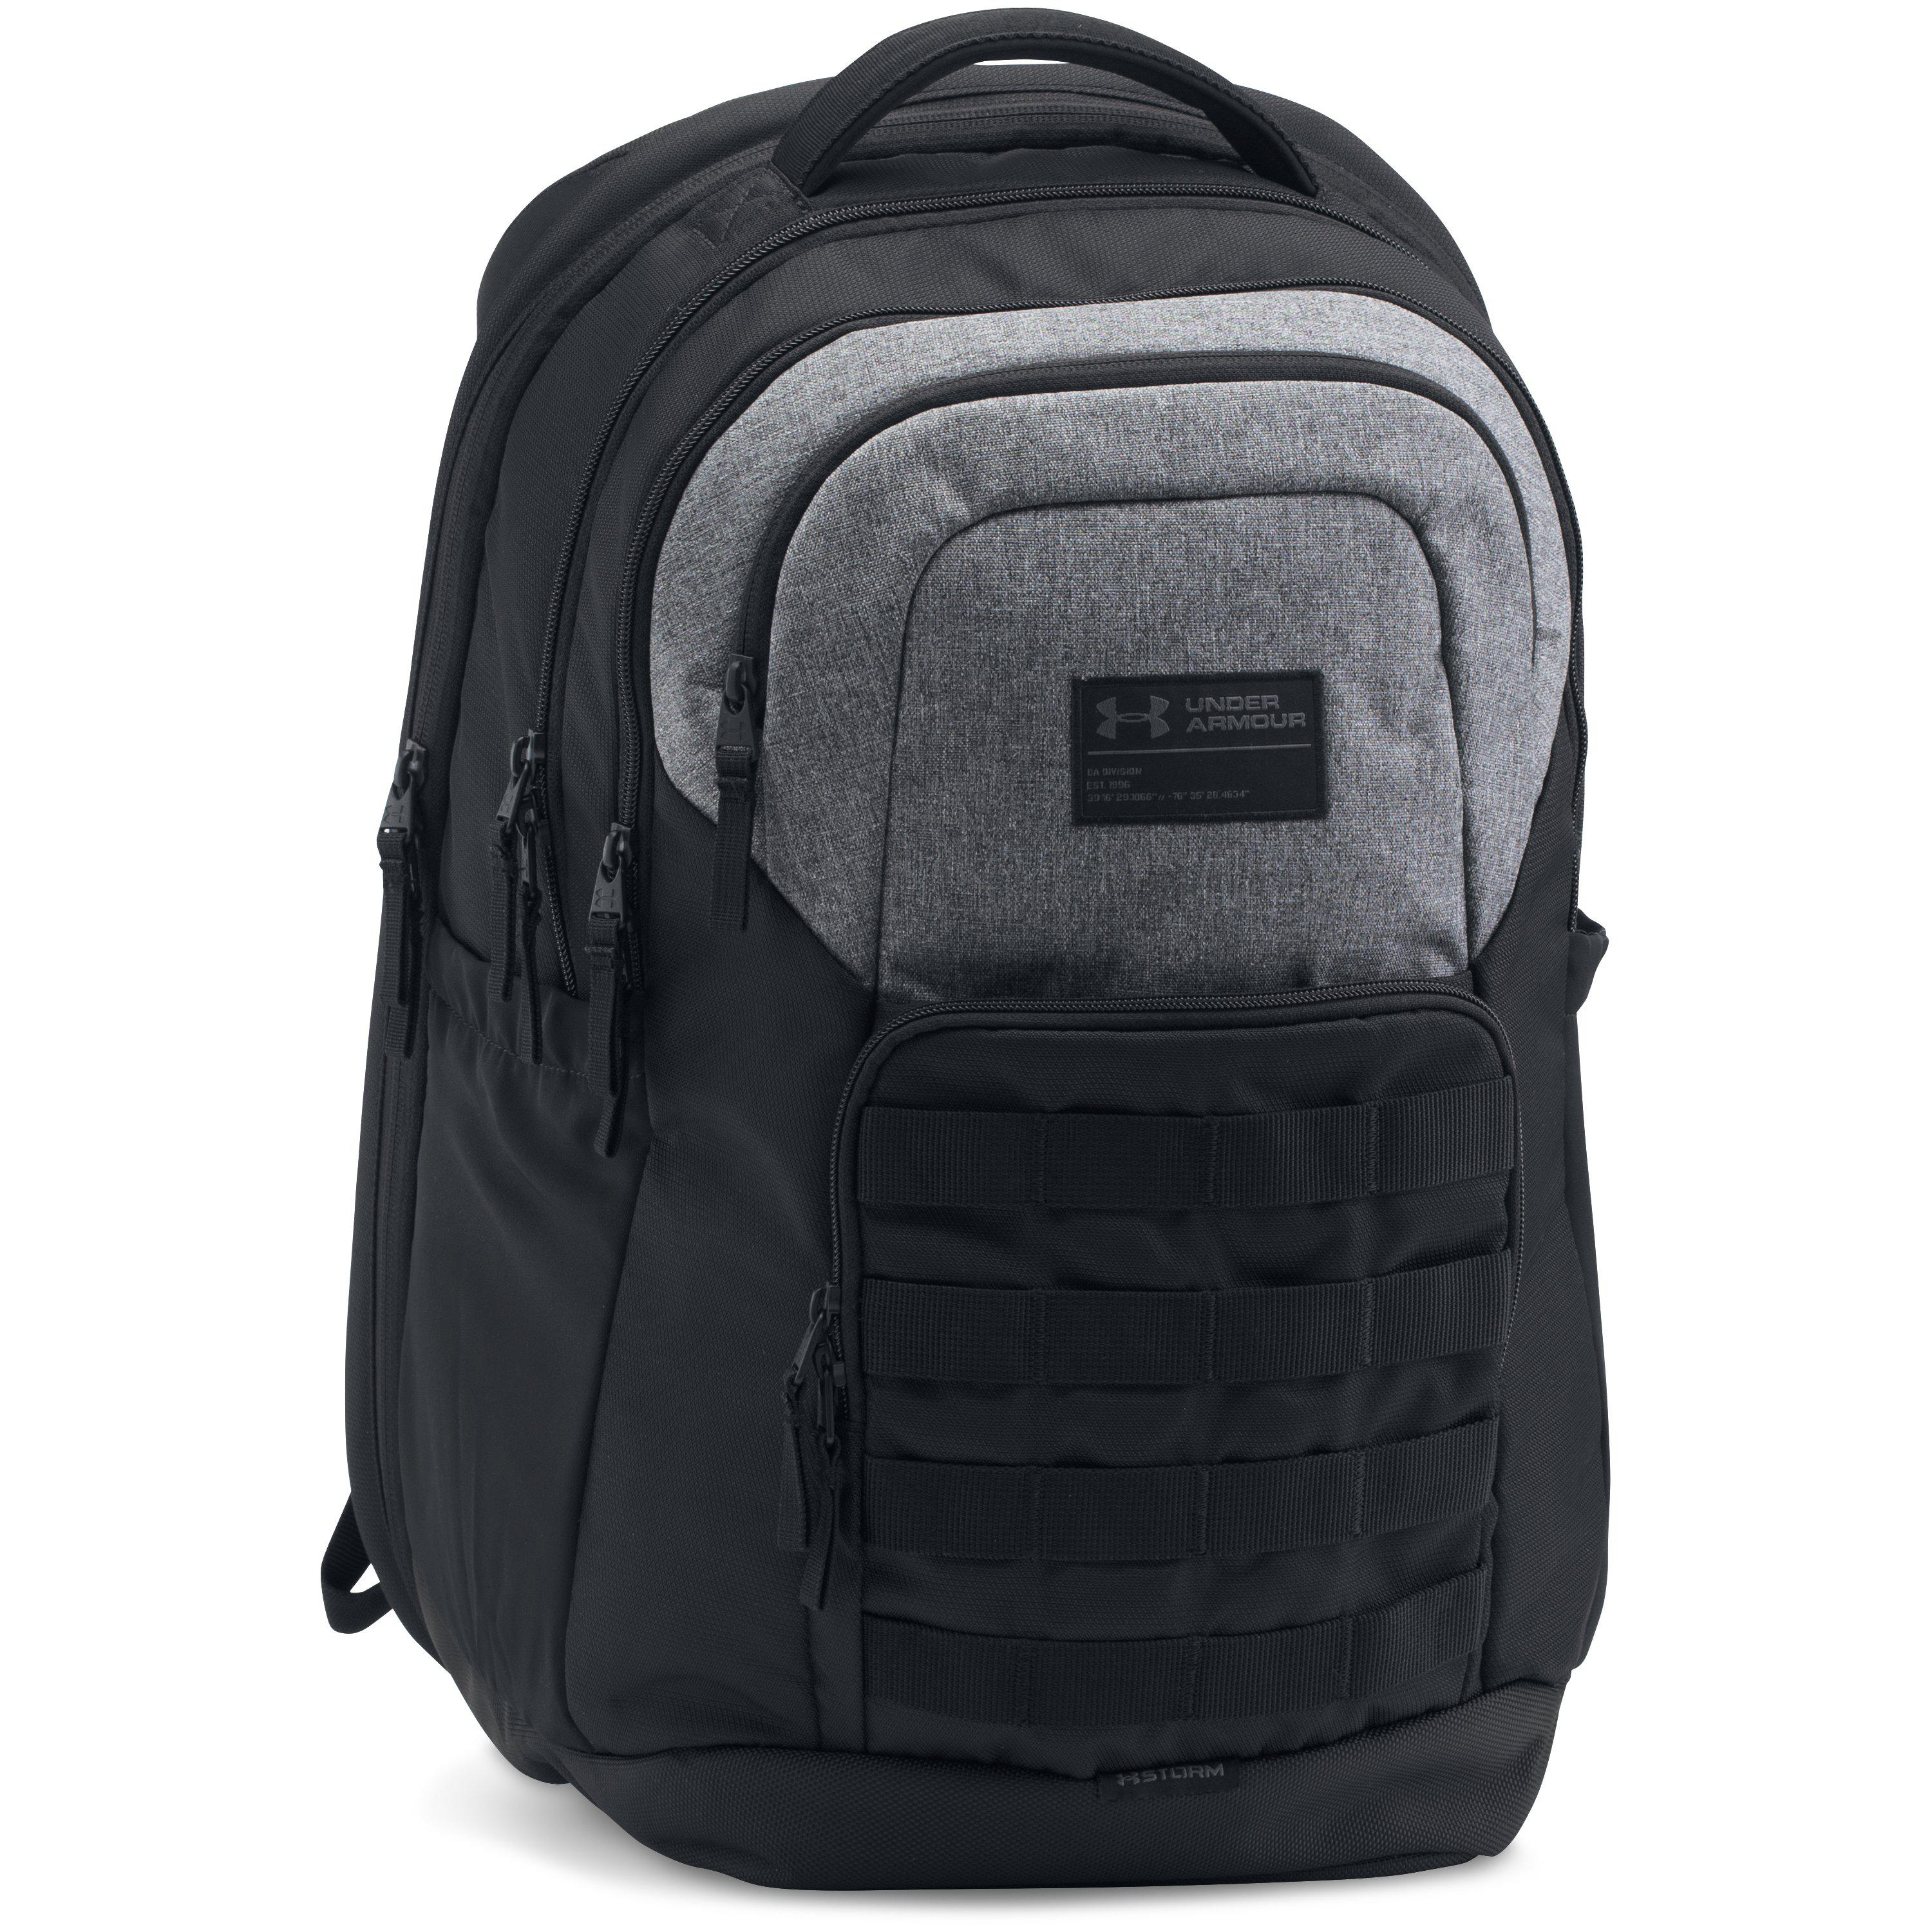 107db9d0f22 ... new concept 72013 ea274 Adidas Originals Black Backpack for Men Lyst   best loved 79b49 35879 Under Armour - Black Guardian Backpack for Men - Lyst  ...